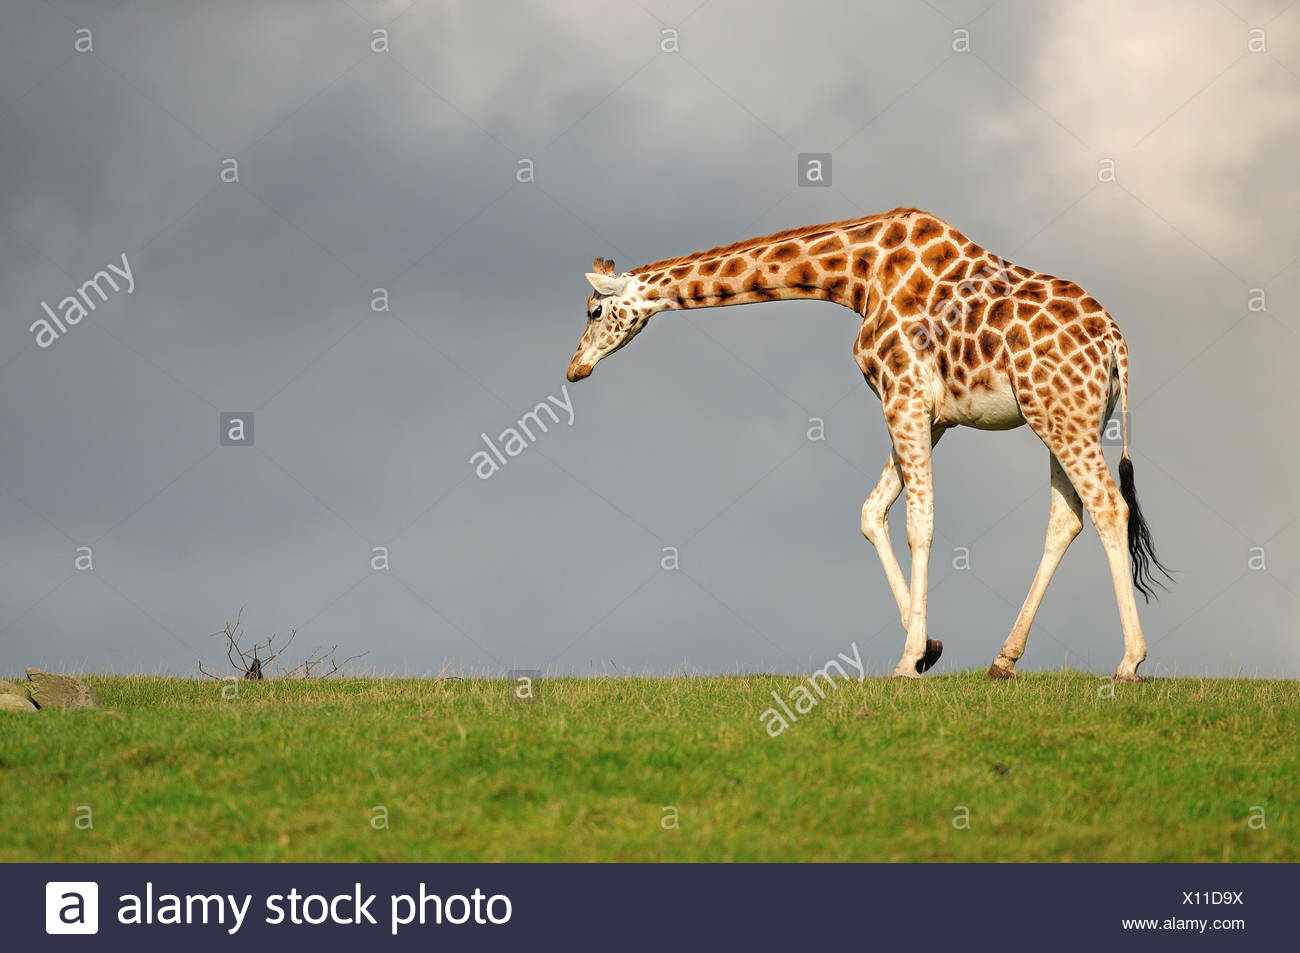 Girafe marche face au ciel noir Photo Stock